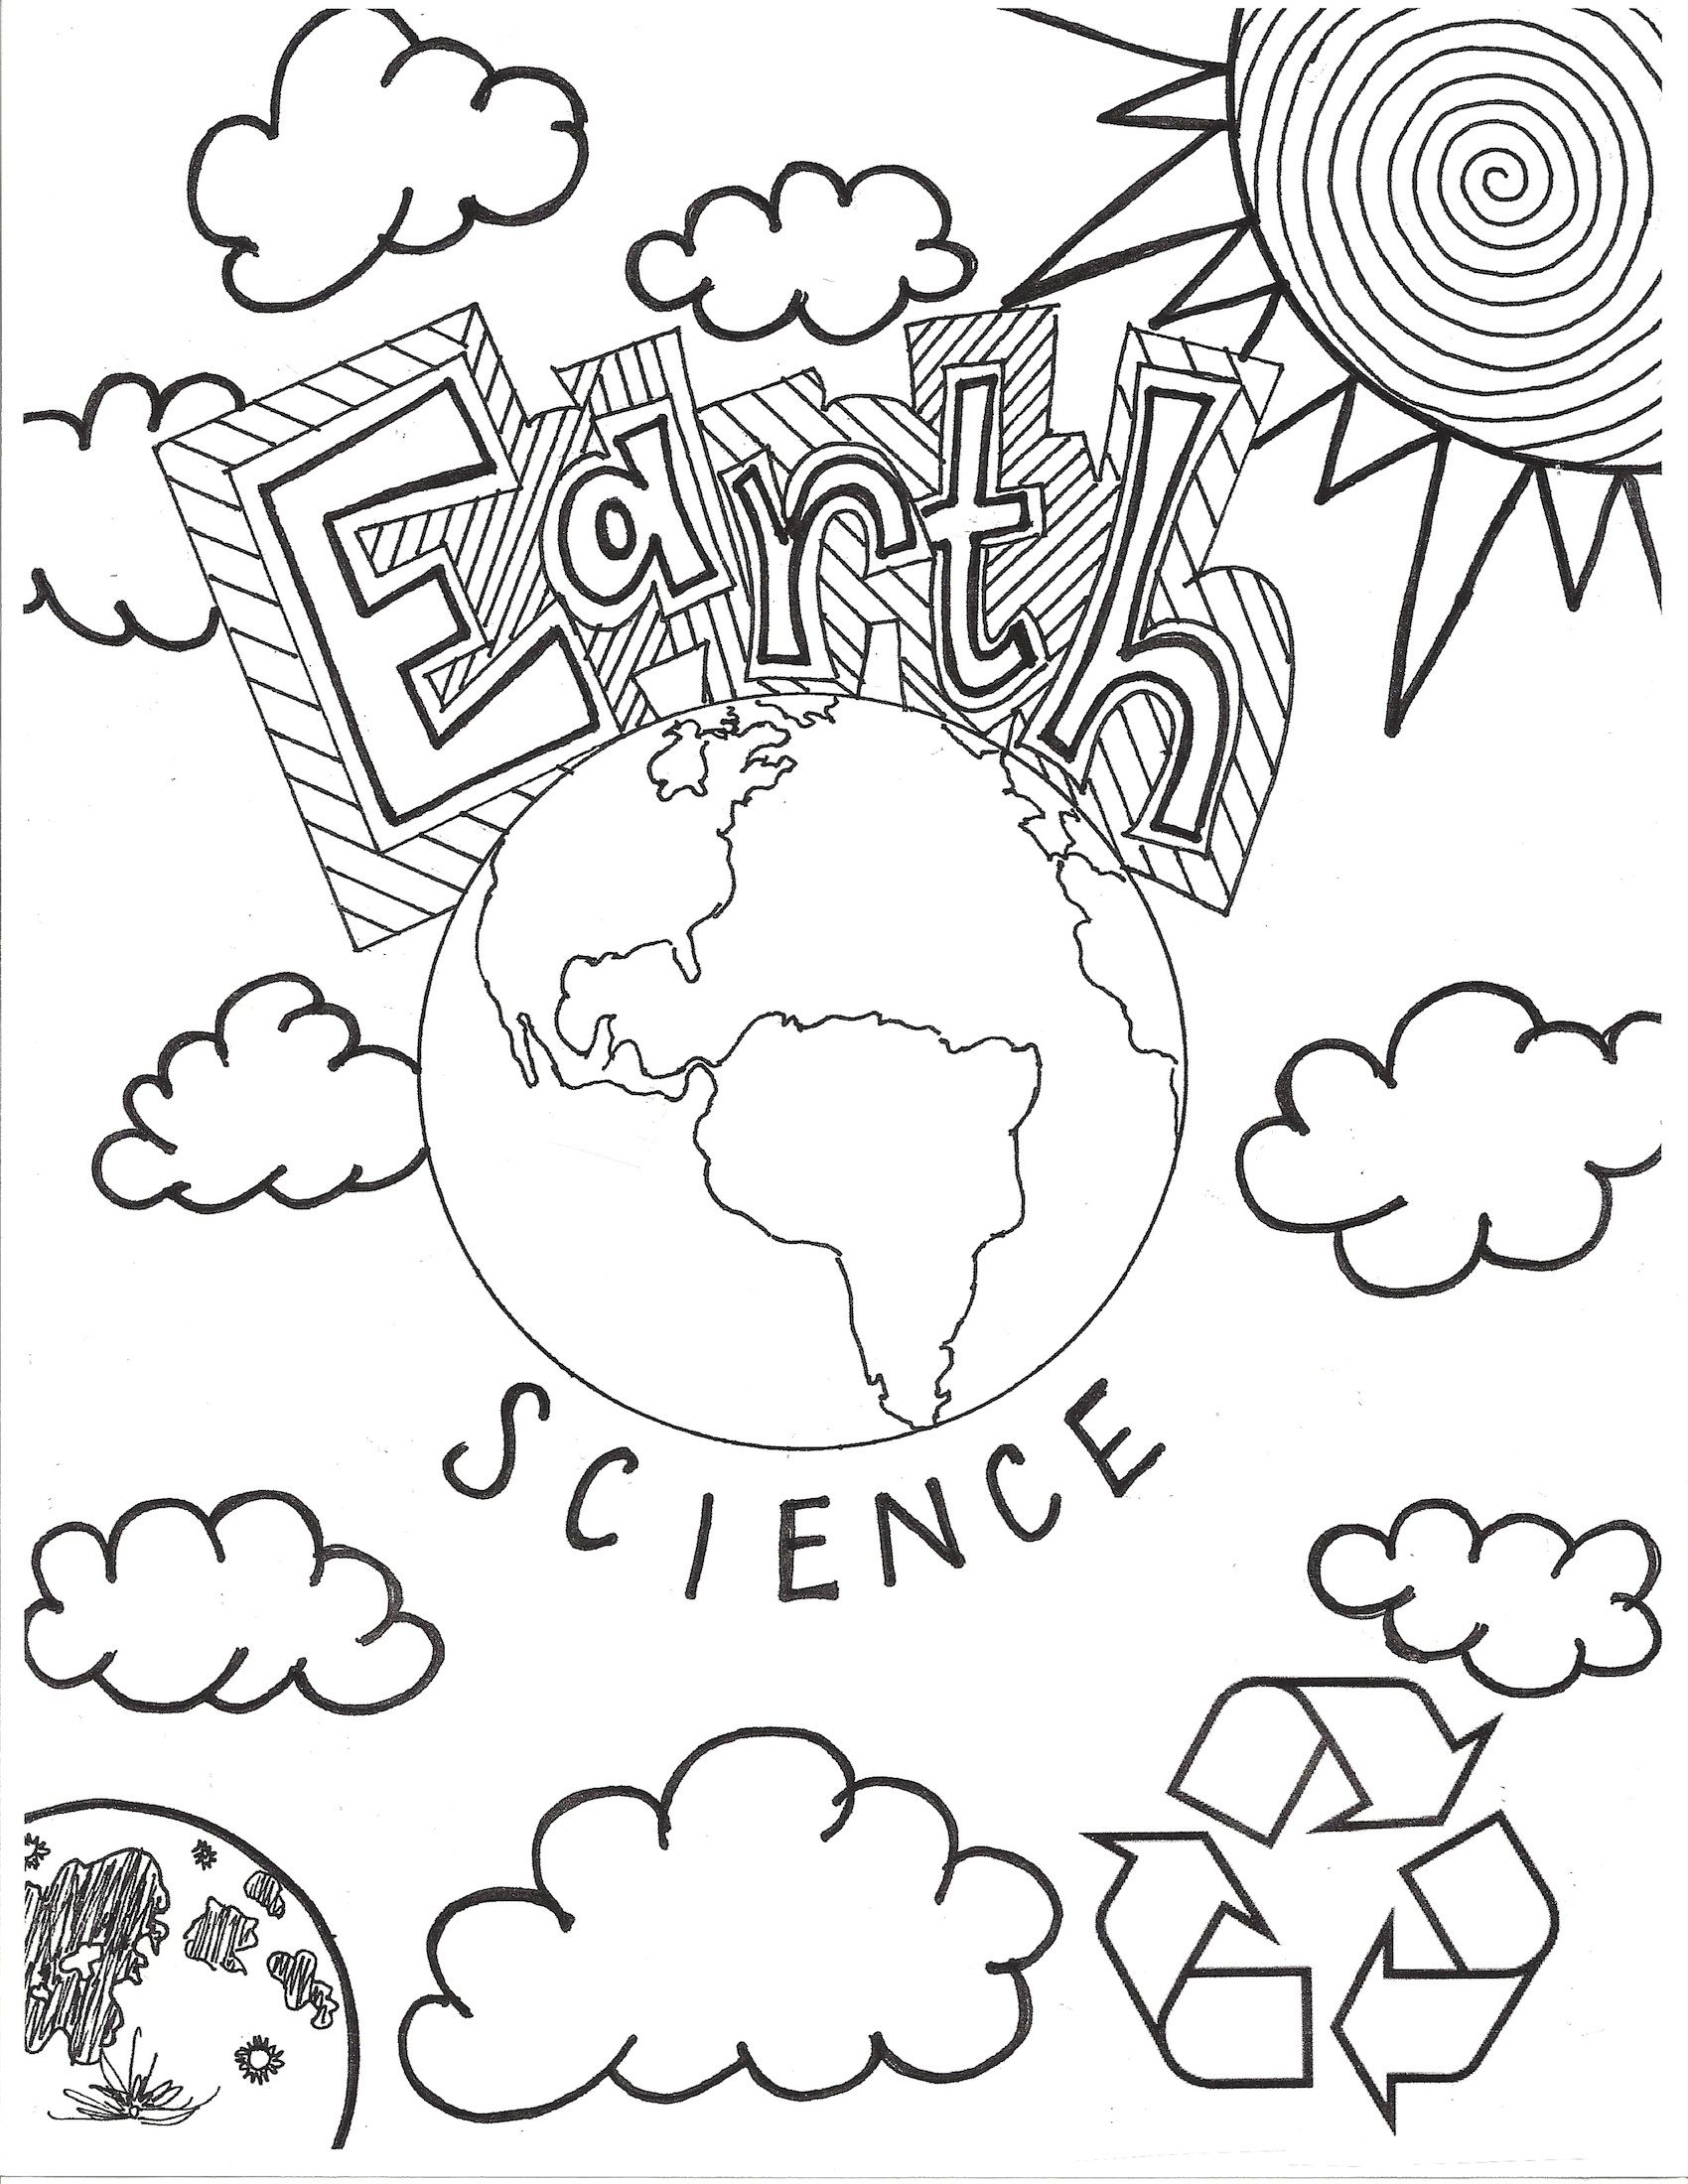 Earth Science Coloring Page Cover Page Middle School Science